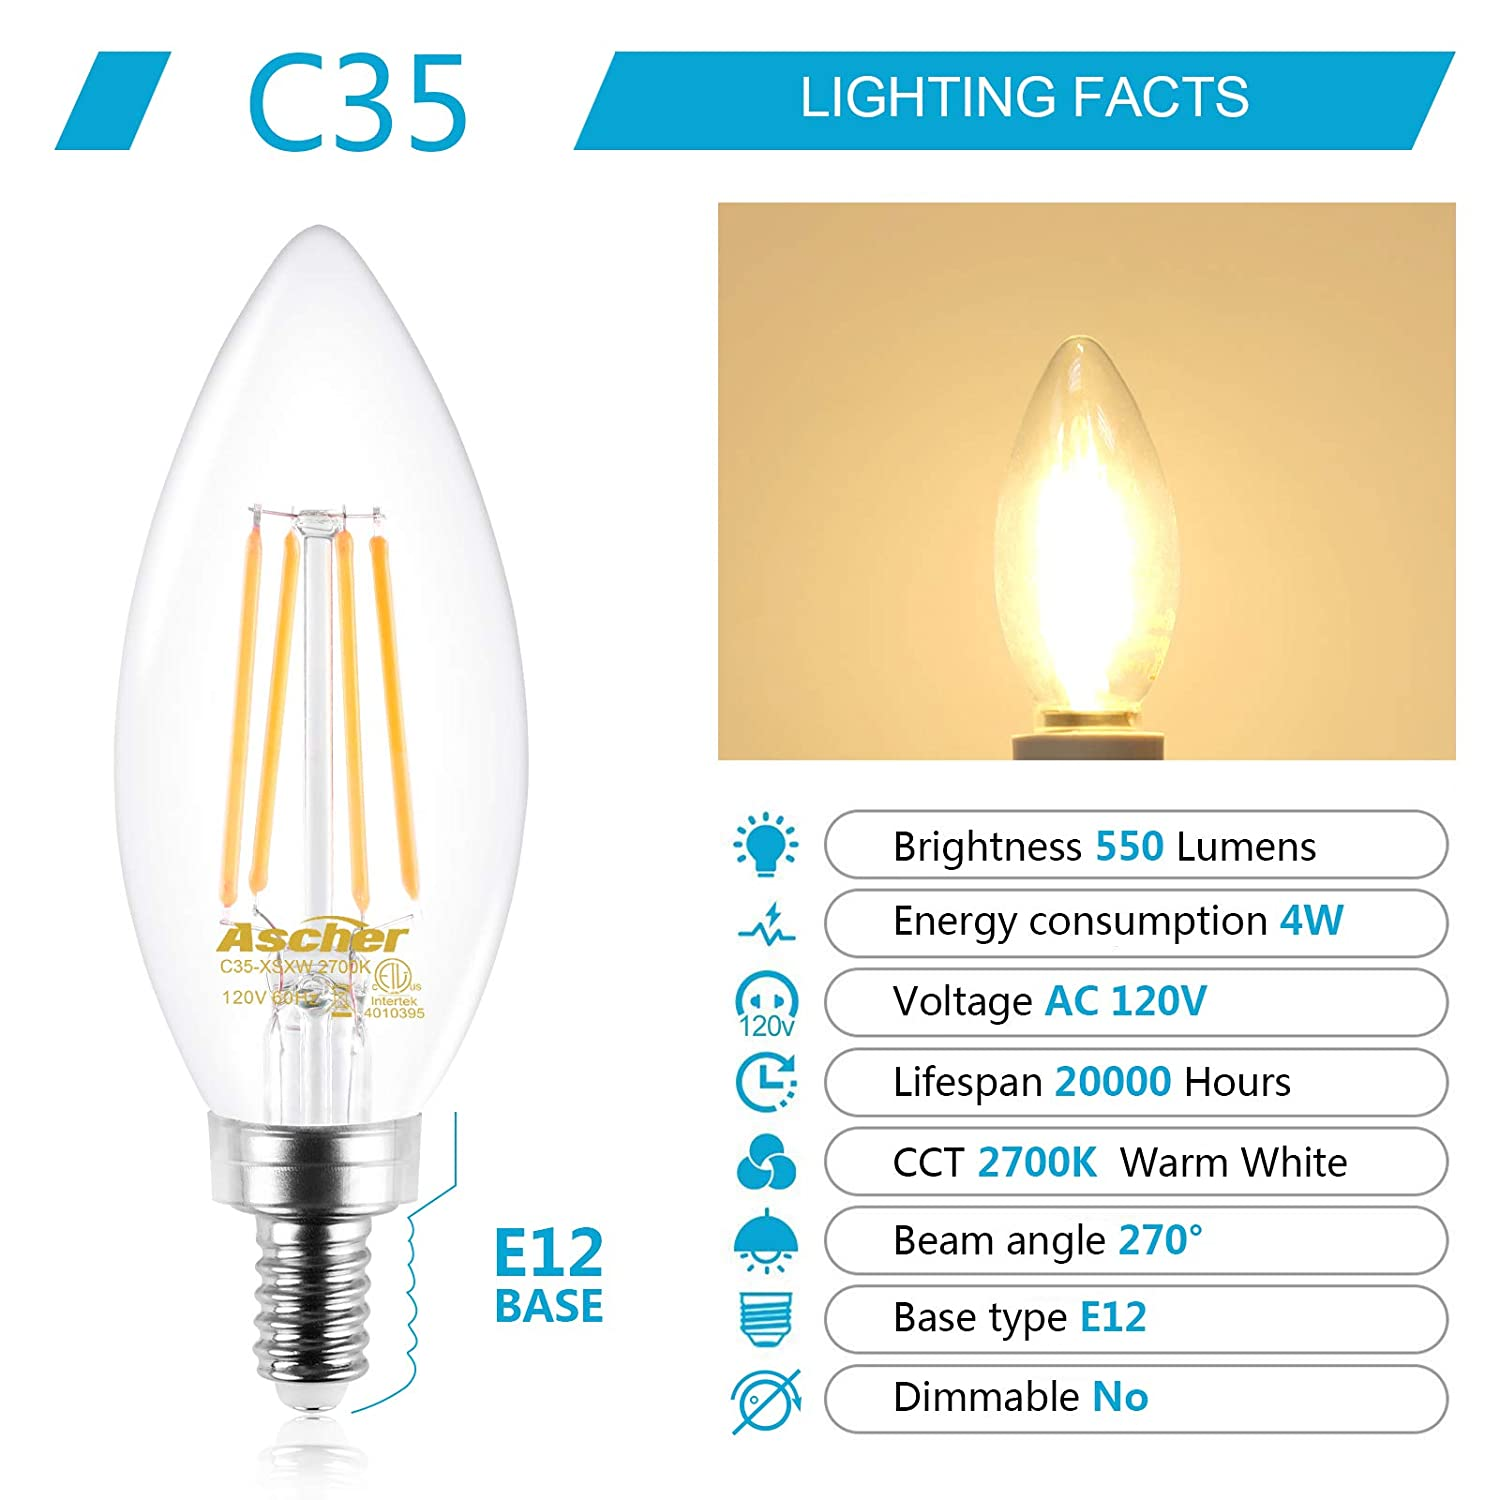 Non-Dimmable Filament Clear Glass Decorative Candle Base 550 Lumens Warm White 2700K Ascher E12 Candelabra LED Light Bulbs 60 Watt Equivalent Pack of 5